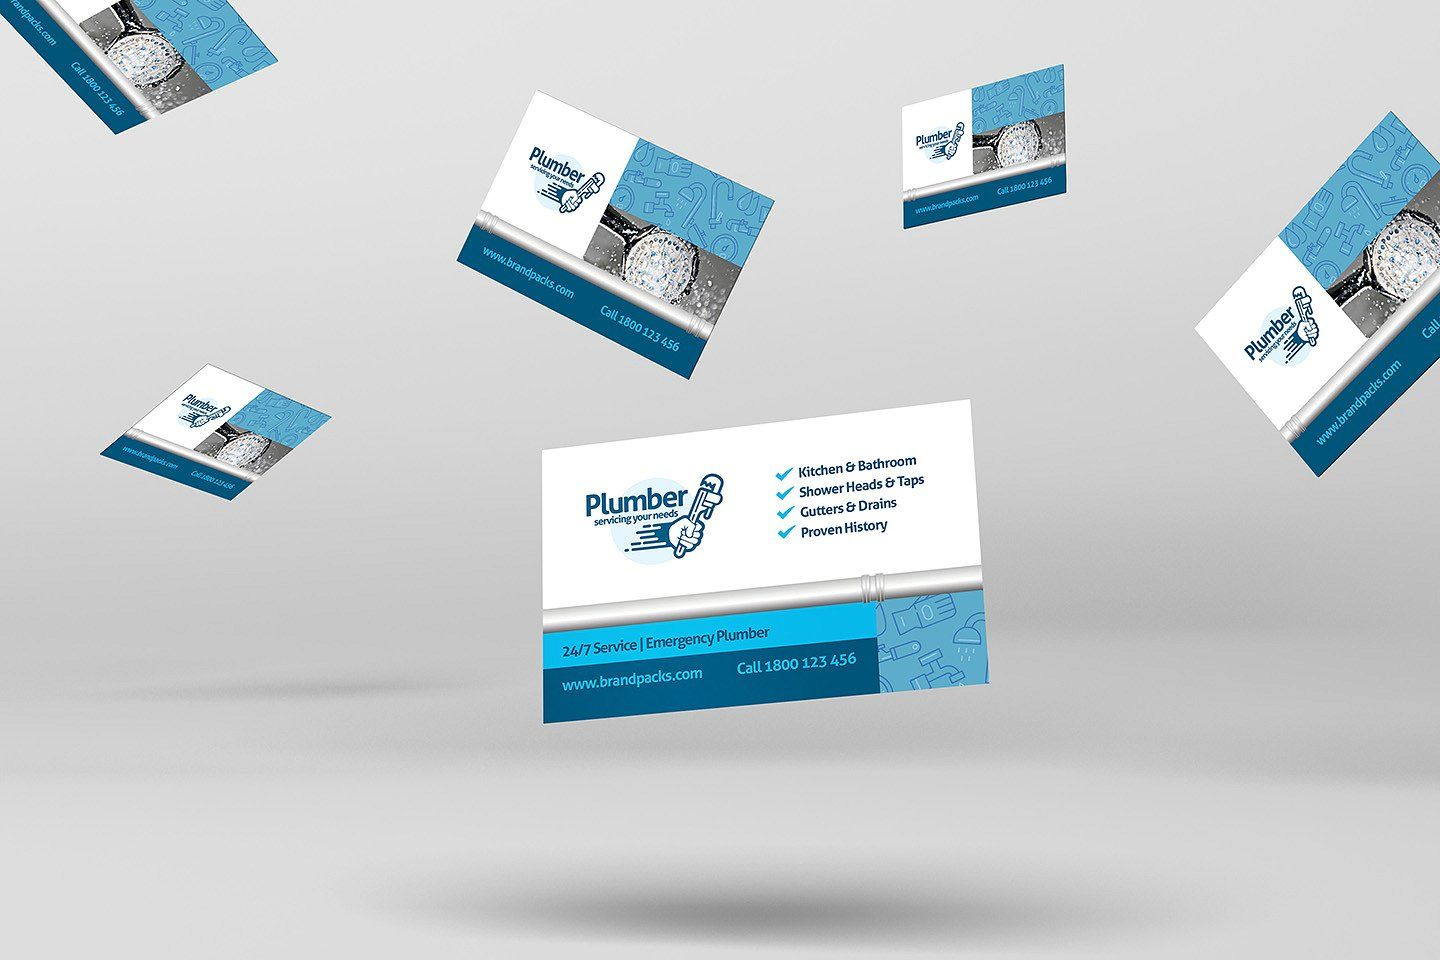 Plumber Business Card Template Easy Save Product Photos